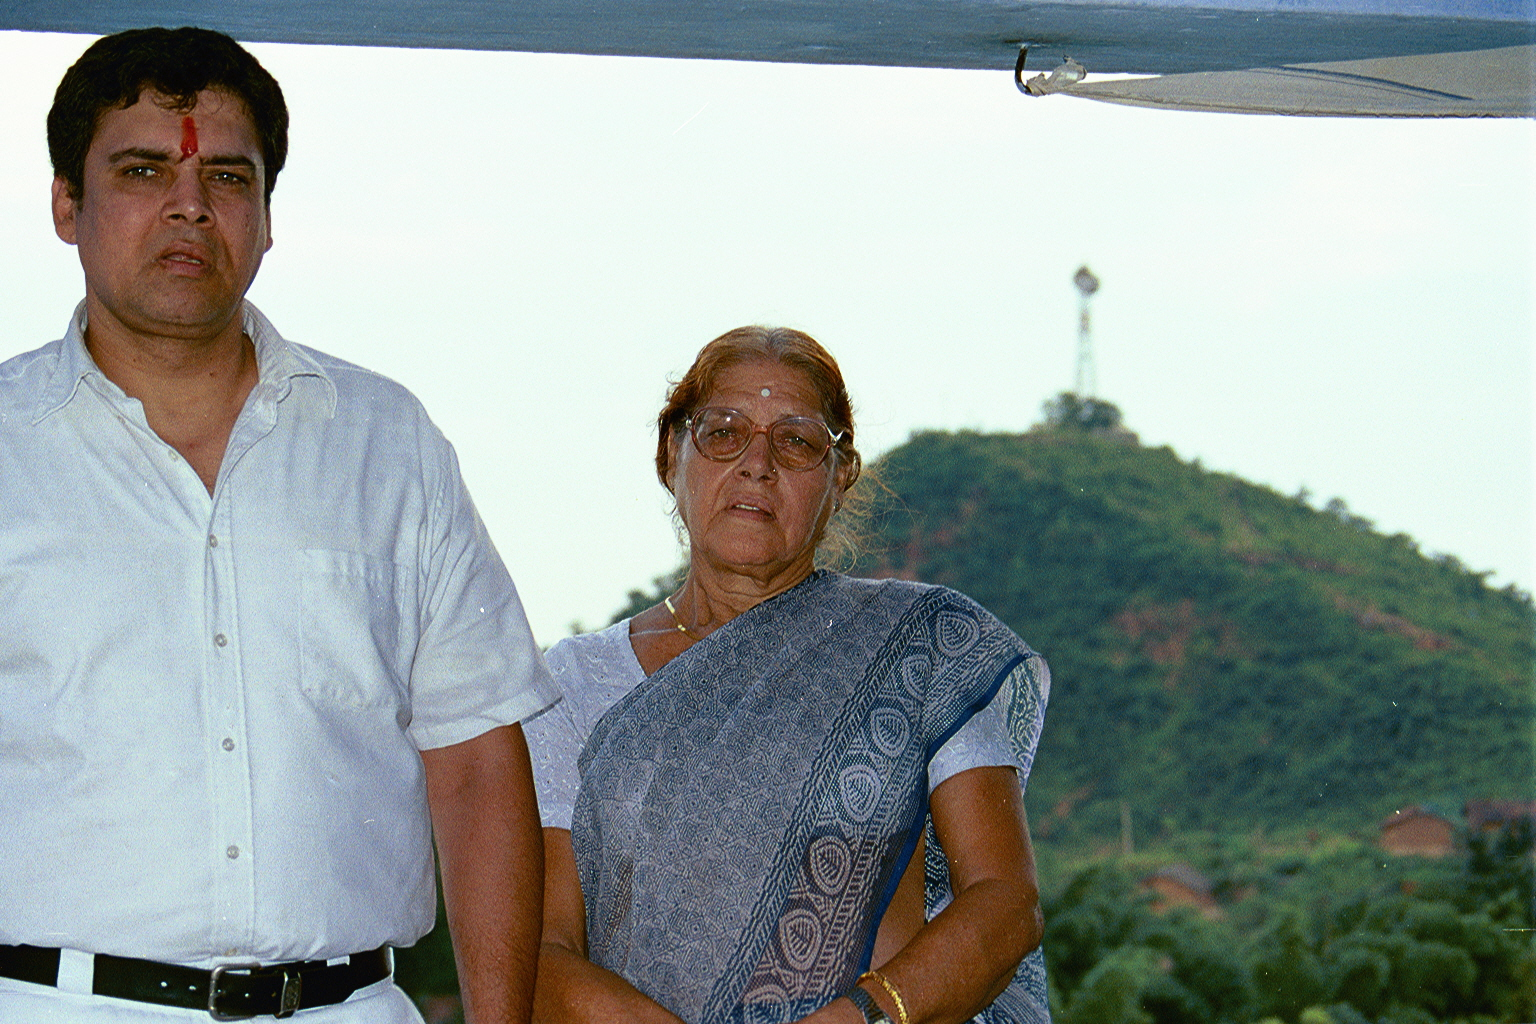 Me and Mom at the temple offering prayers for the soul of my late father